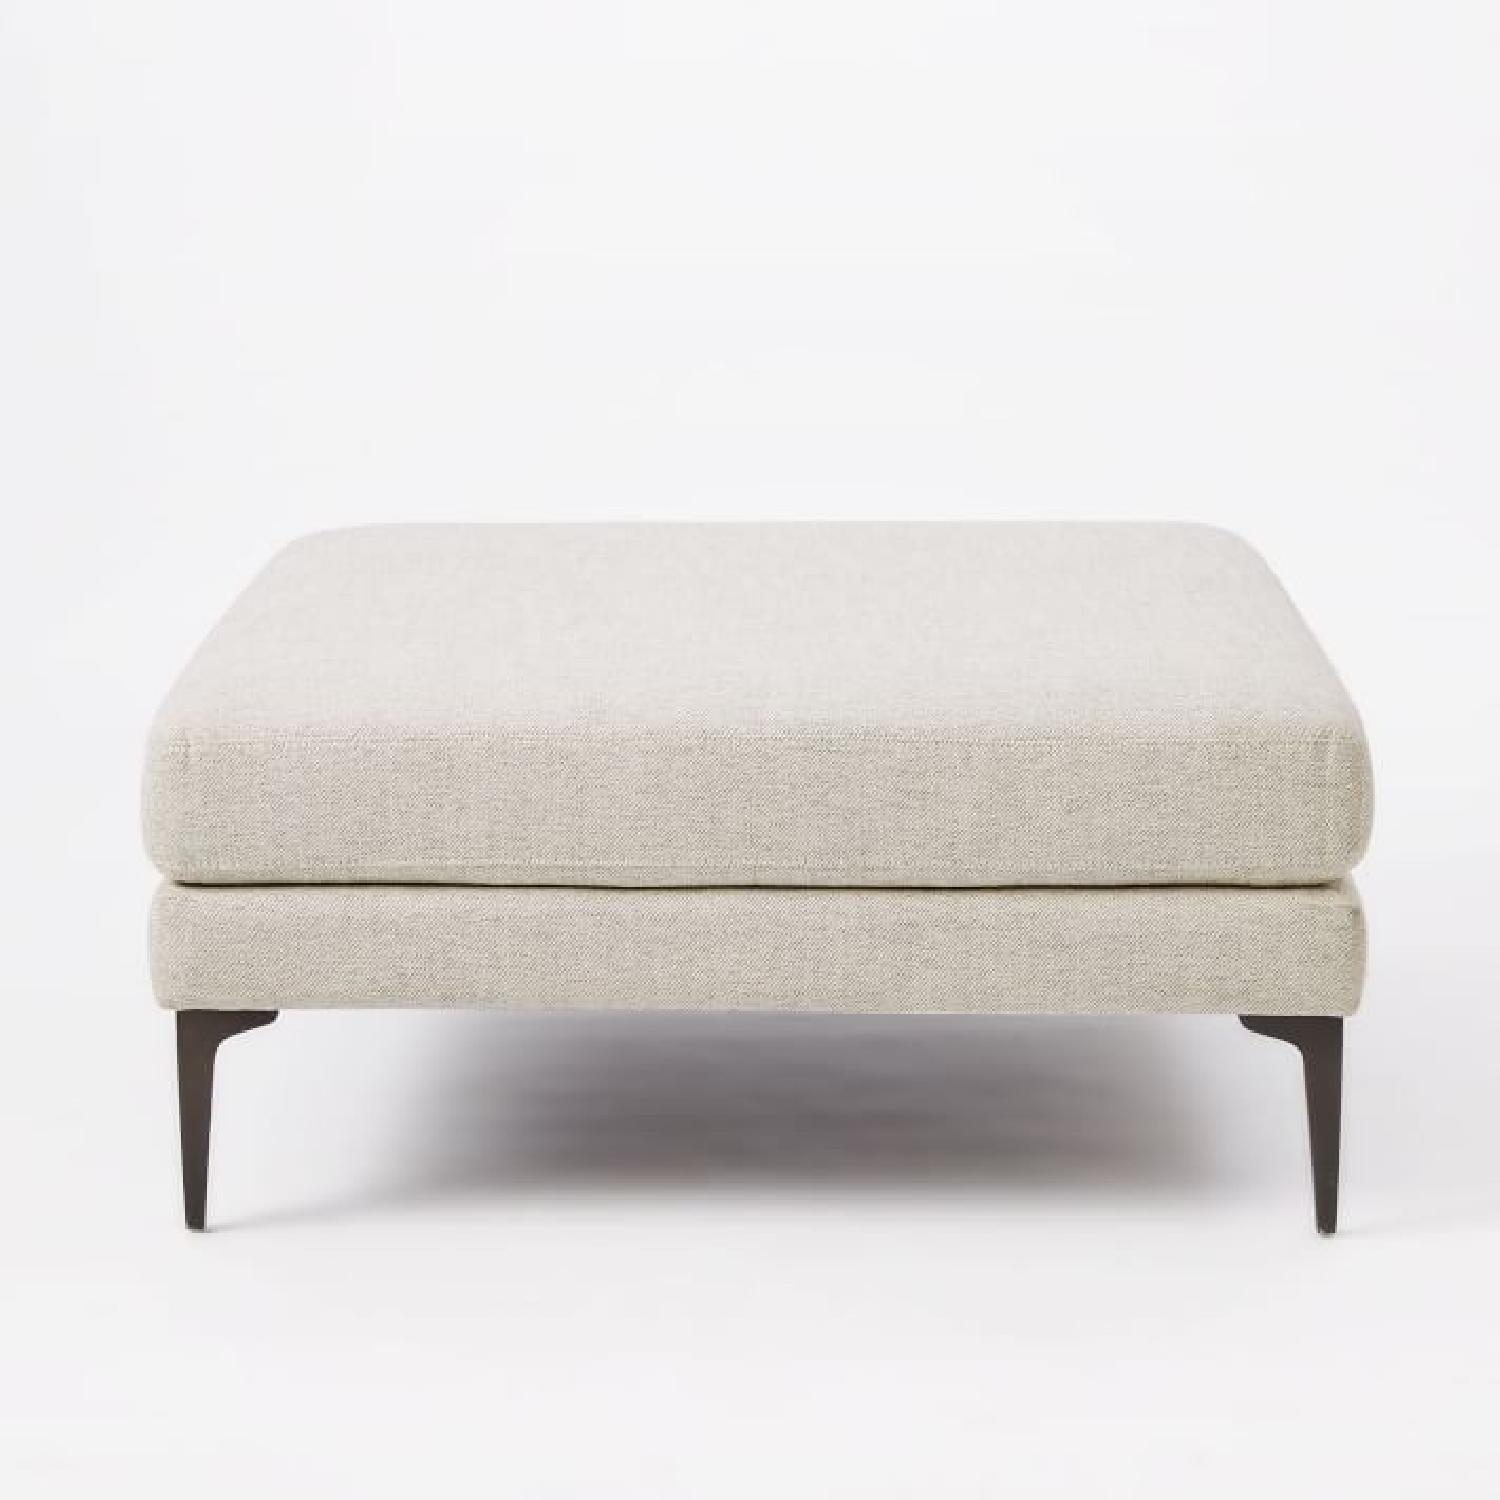 West Elm Andes Ottoman